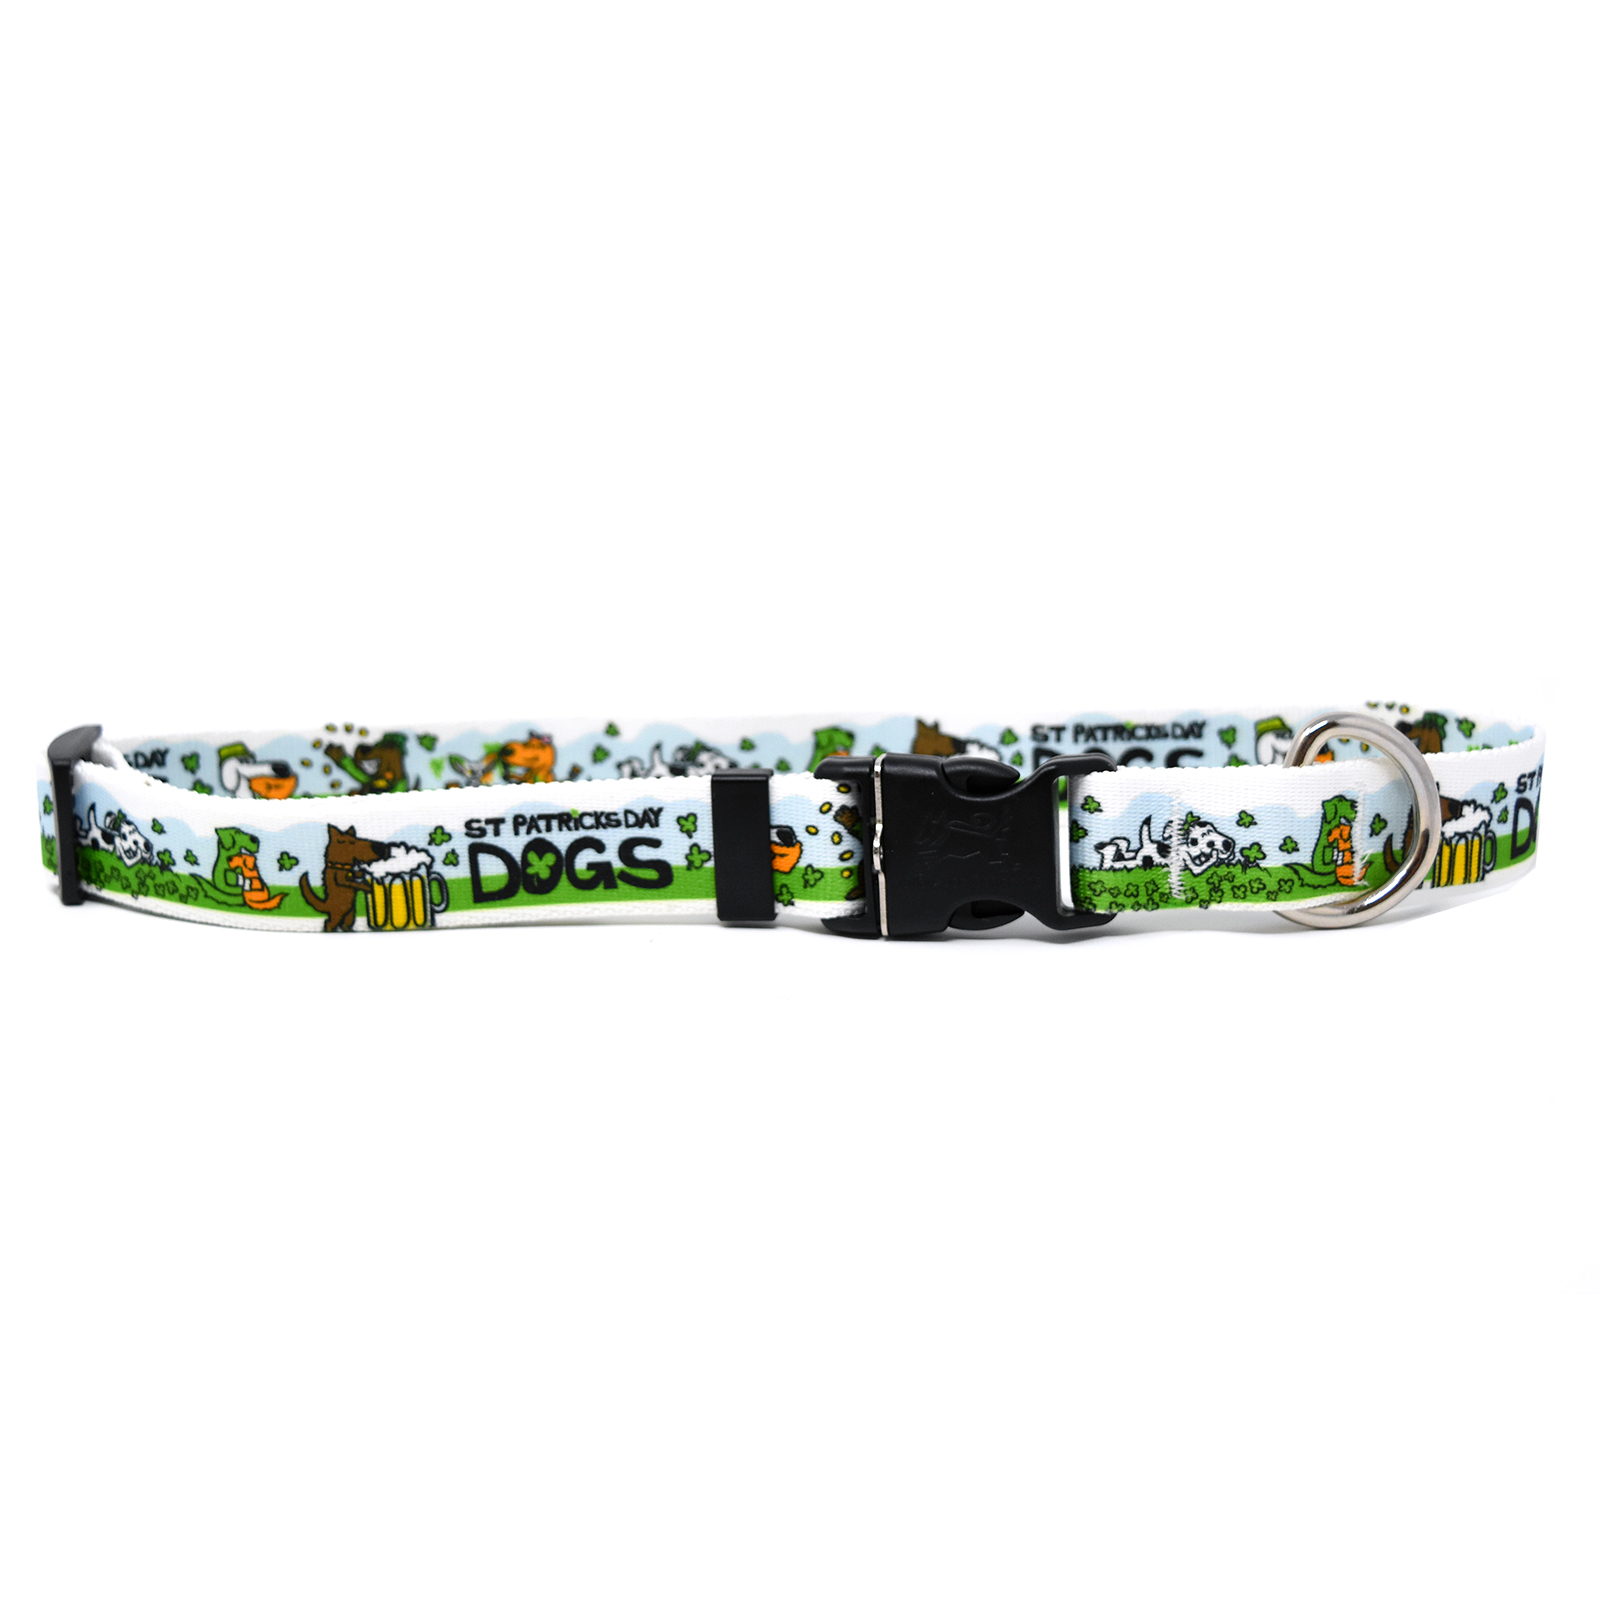 St Patricks Day Dogs Standard Collar